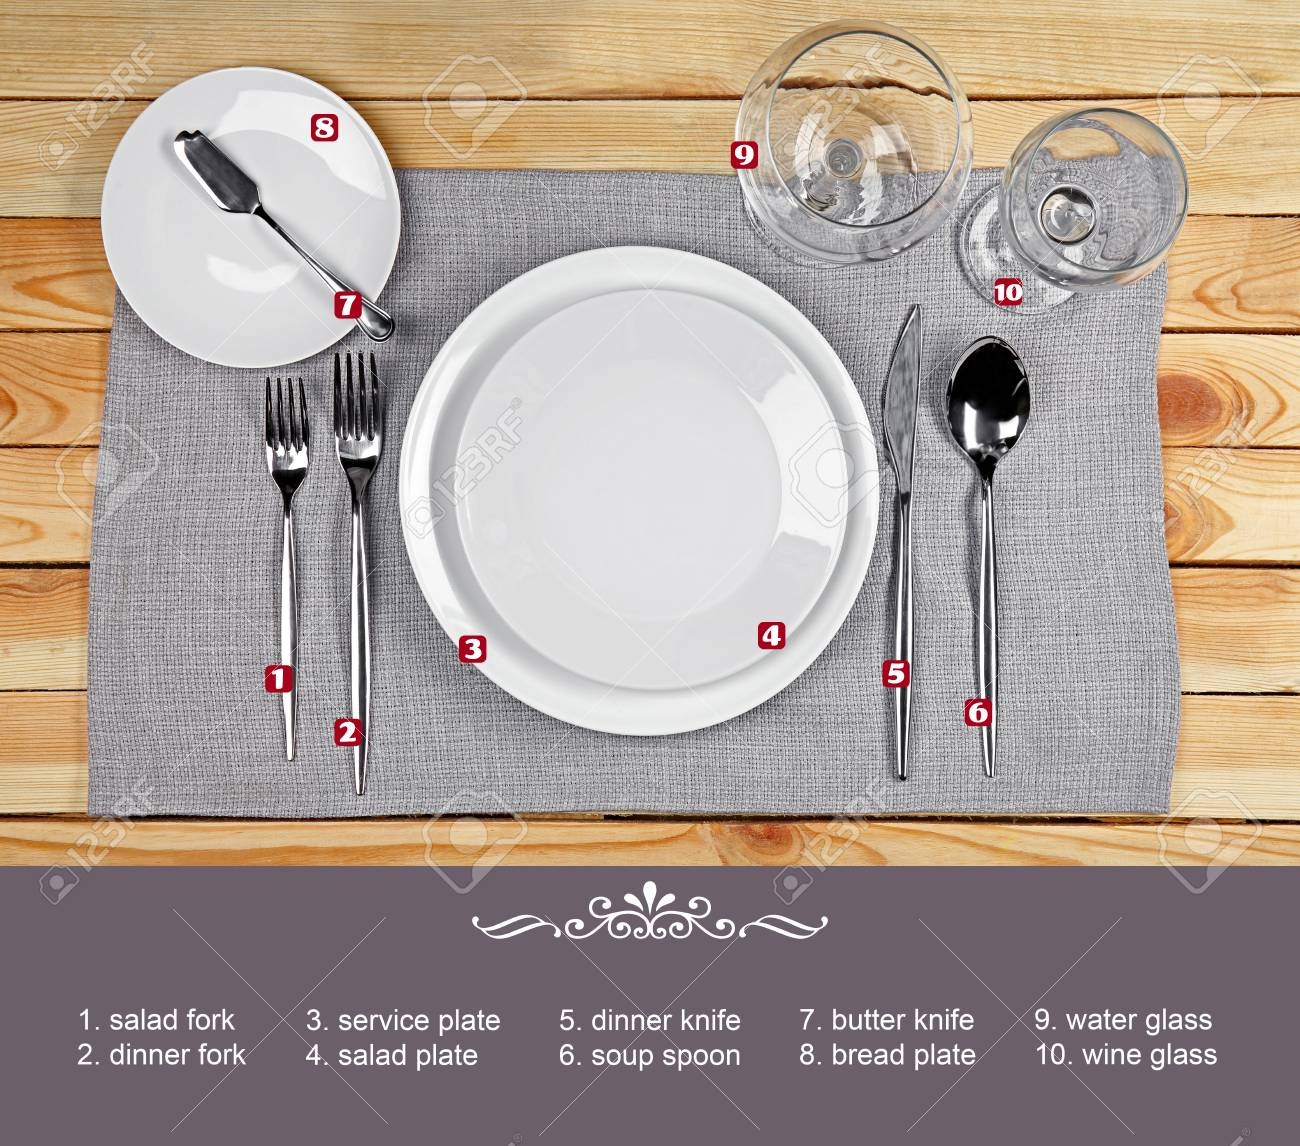 Arrangement Of Dishware And Cutlery On Wooden Background Table